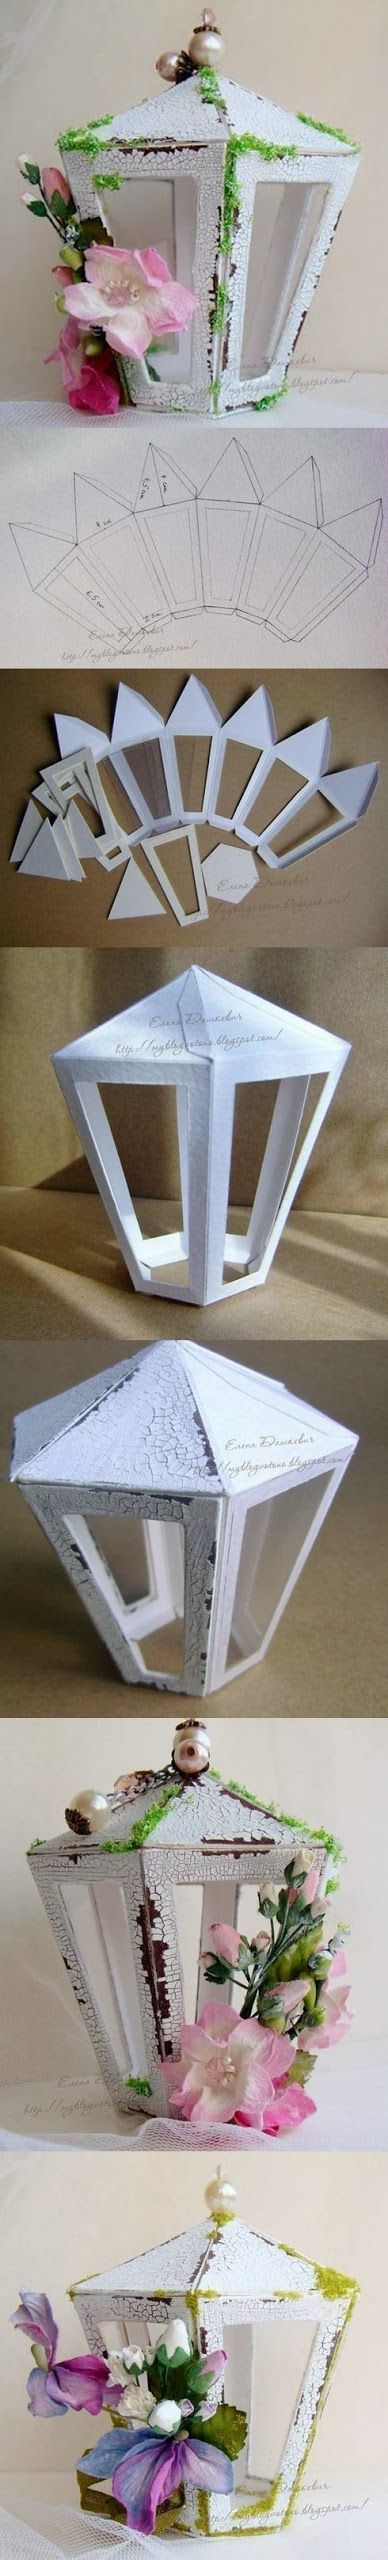 DIY : Cardboard Latern Template | DIY & Crafts Tutorials